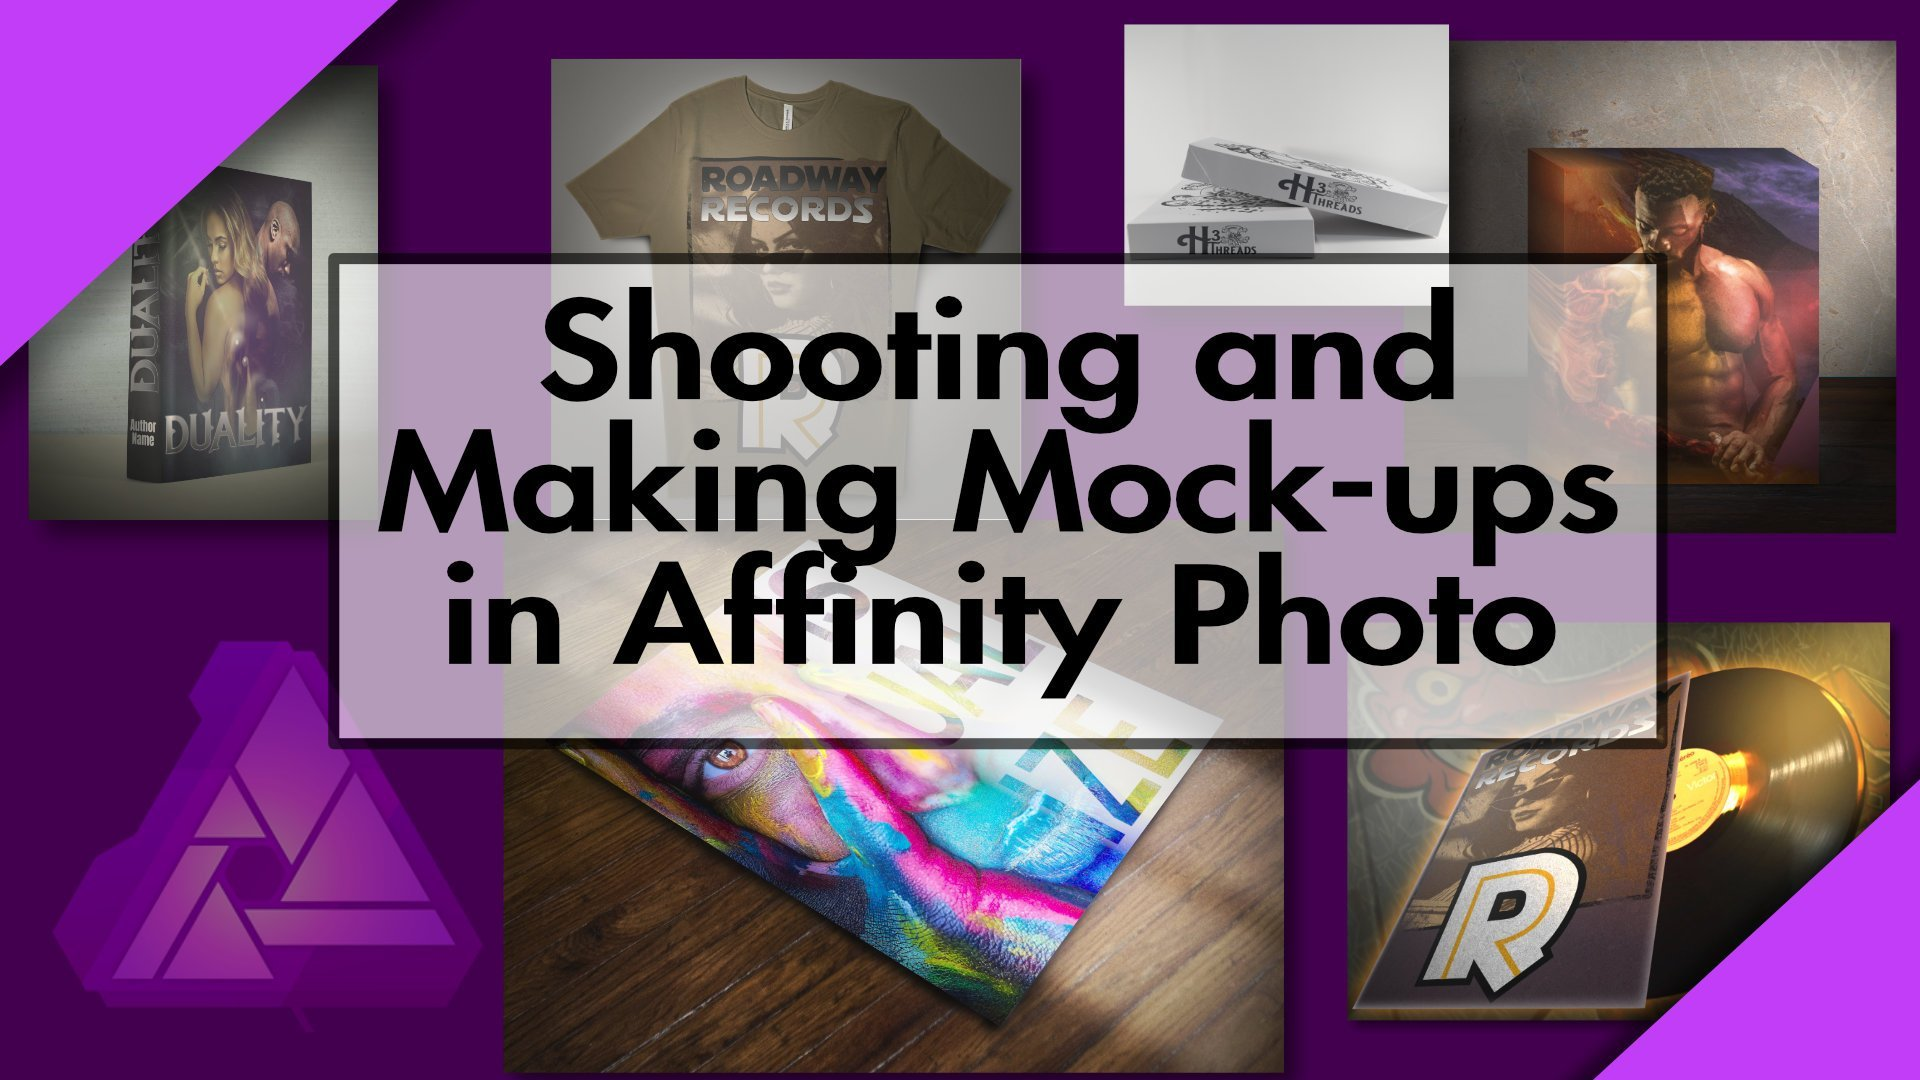 Shooting and editing mock ups in Affinity Photo